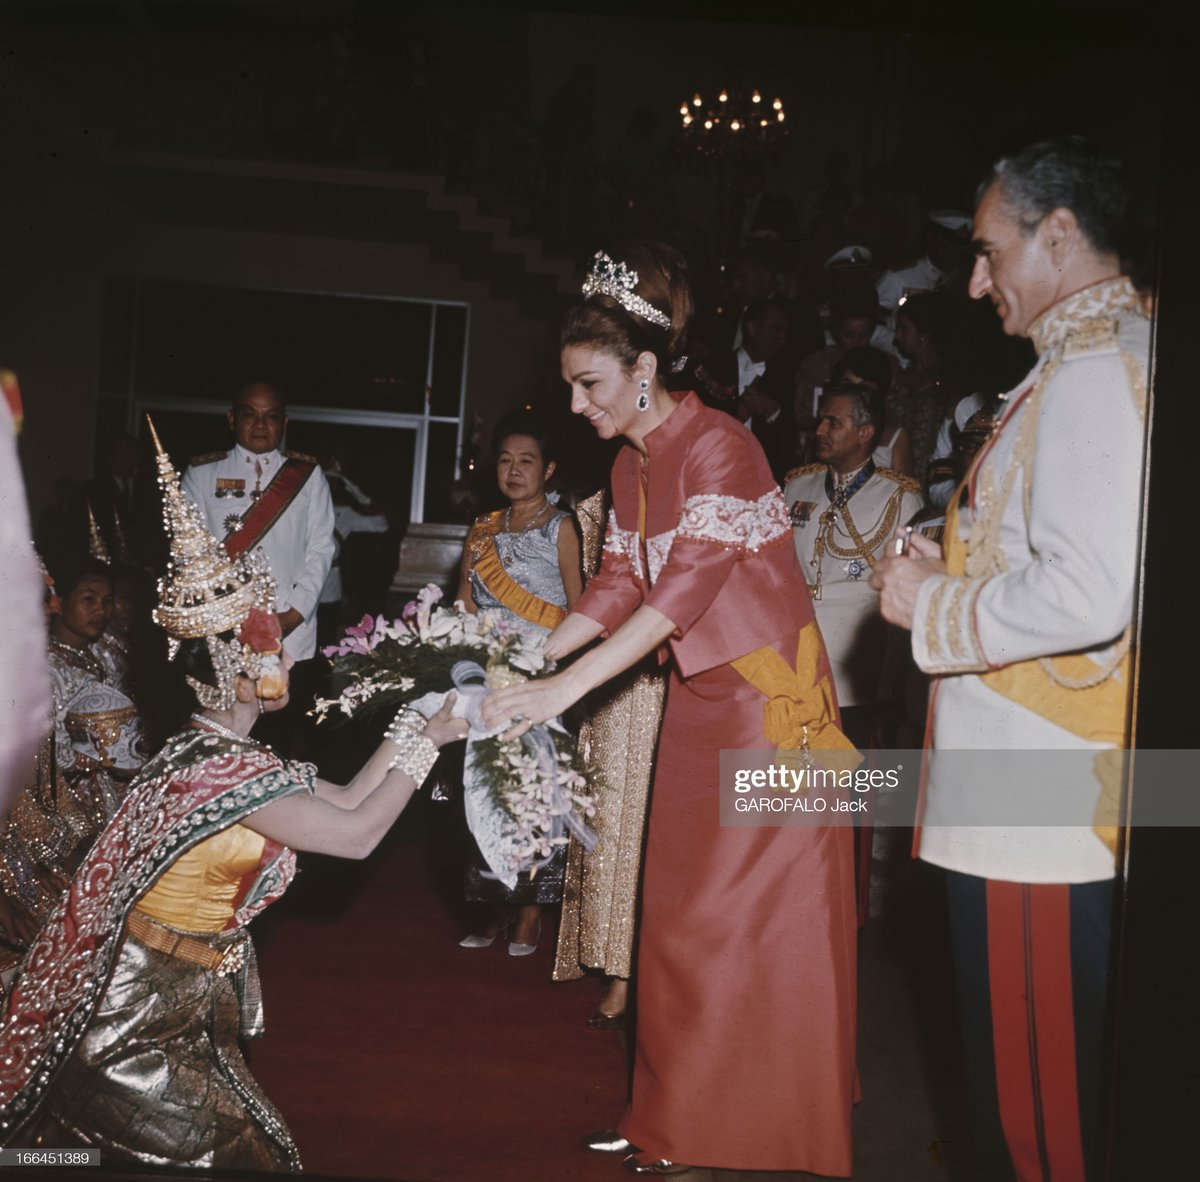 #RoyalFlashback   King Bhumibol Adulyadej and Queen Sirikit host a magnificent Banquet for the Shah of Iran and Empress Farah at the Royal Palace in Bangkok #OnThisDay in 1968, during the Iranian State Visit to Thailand: